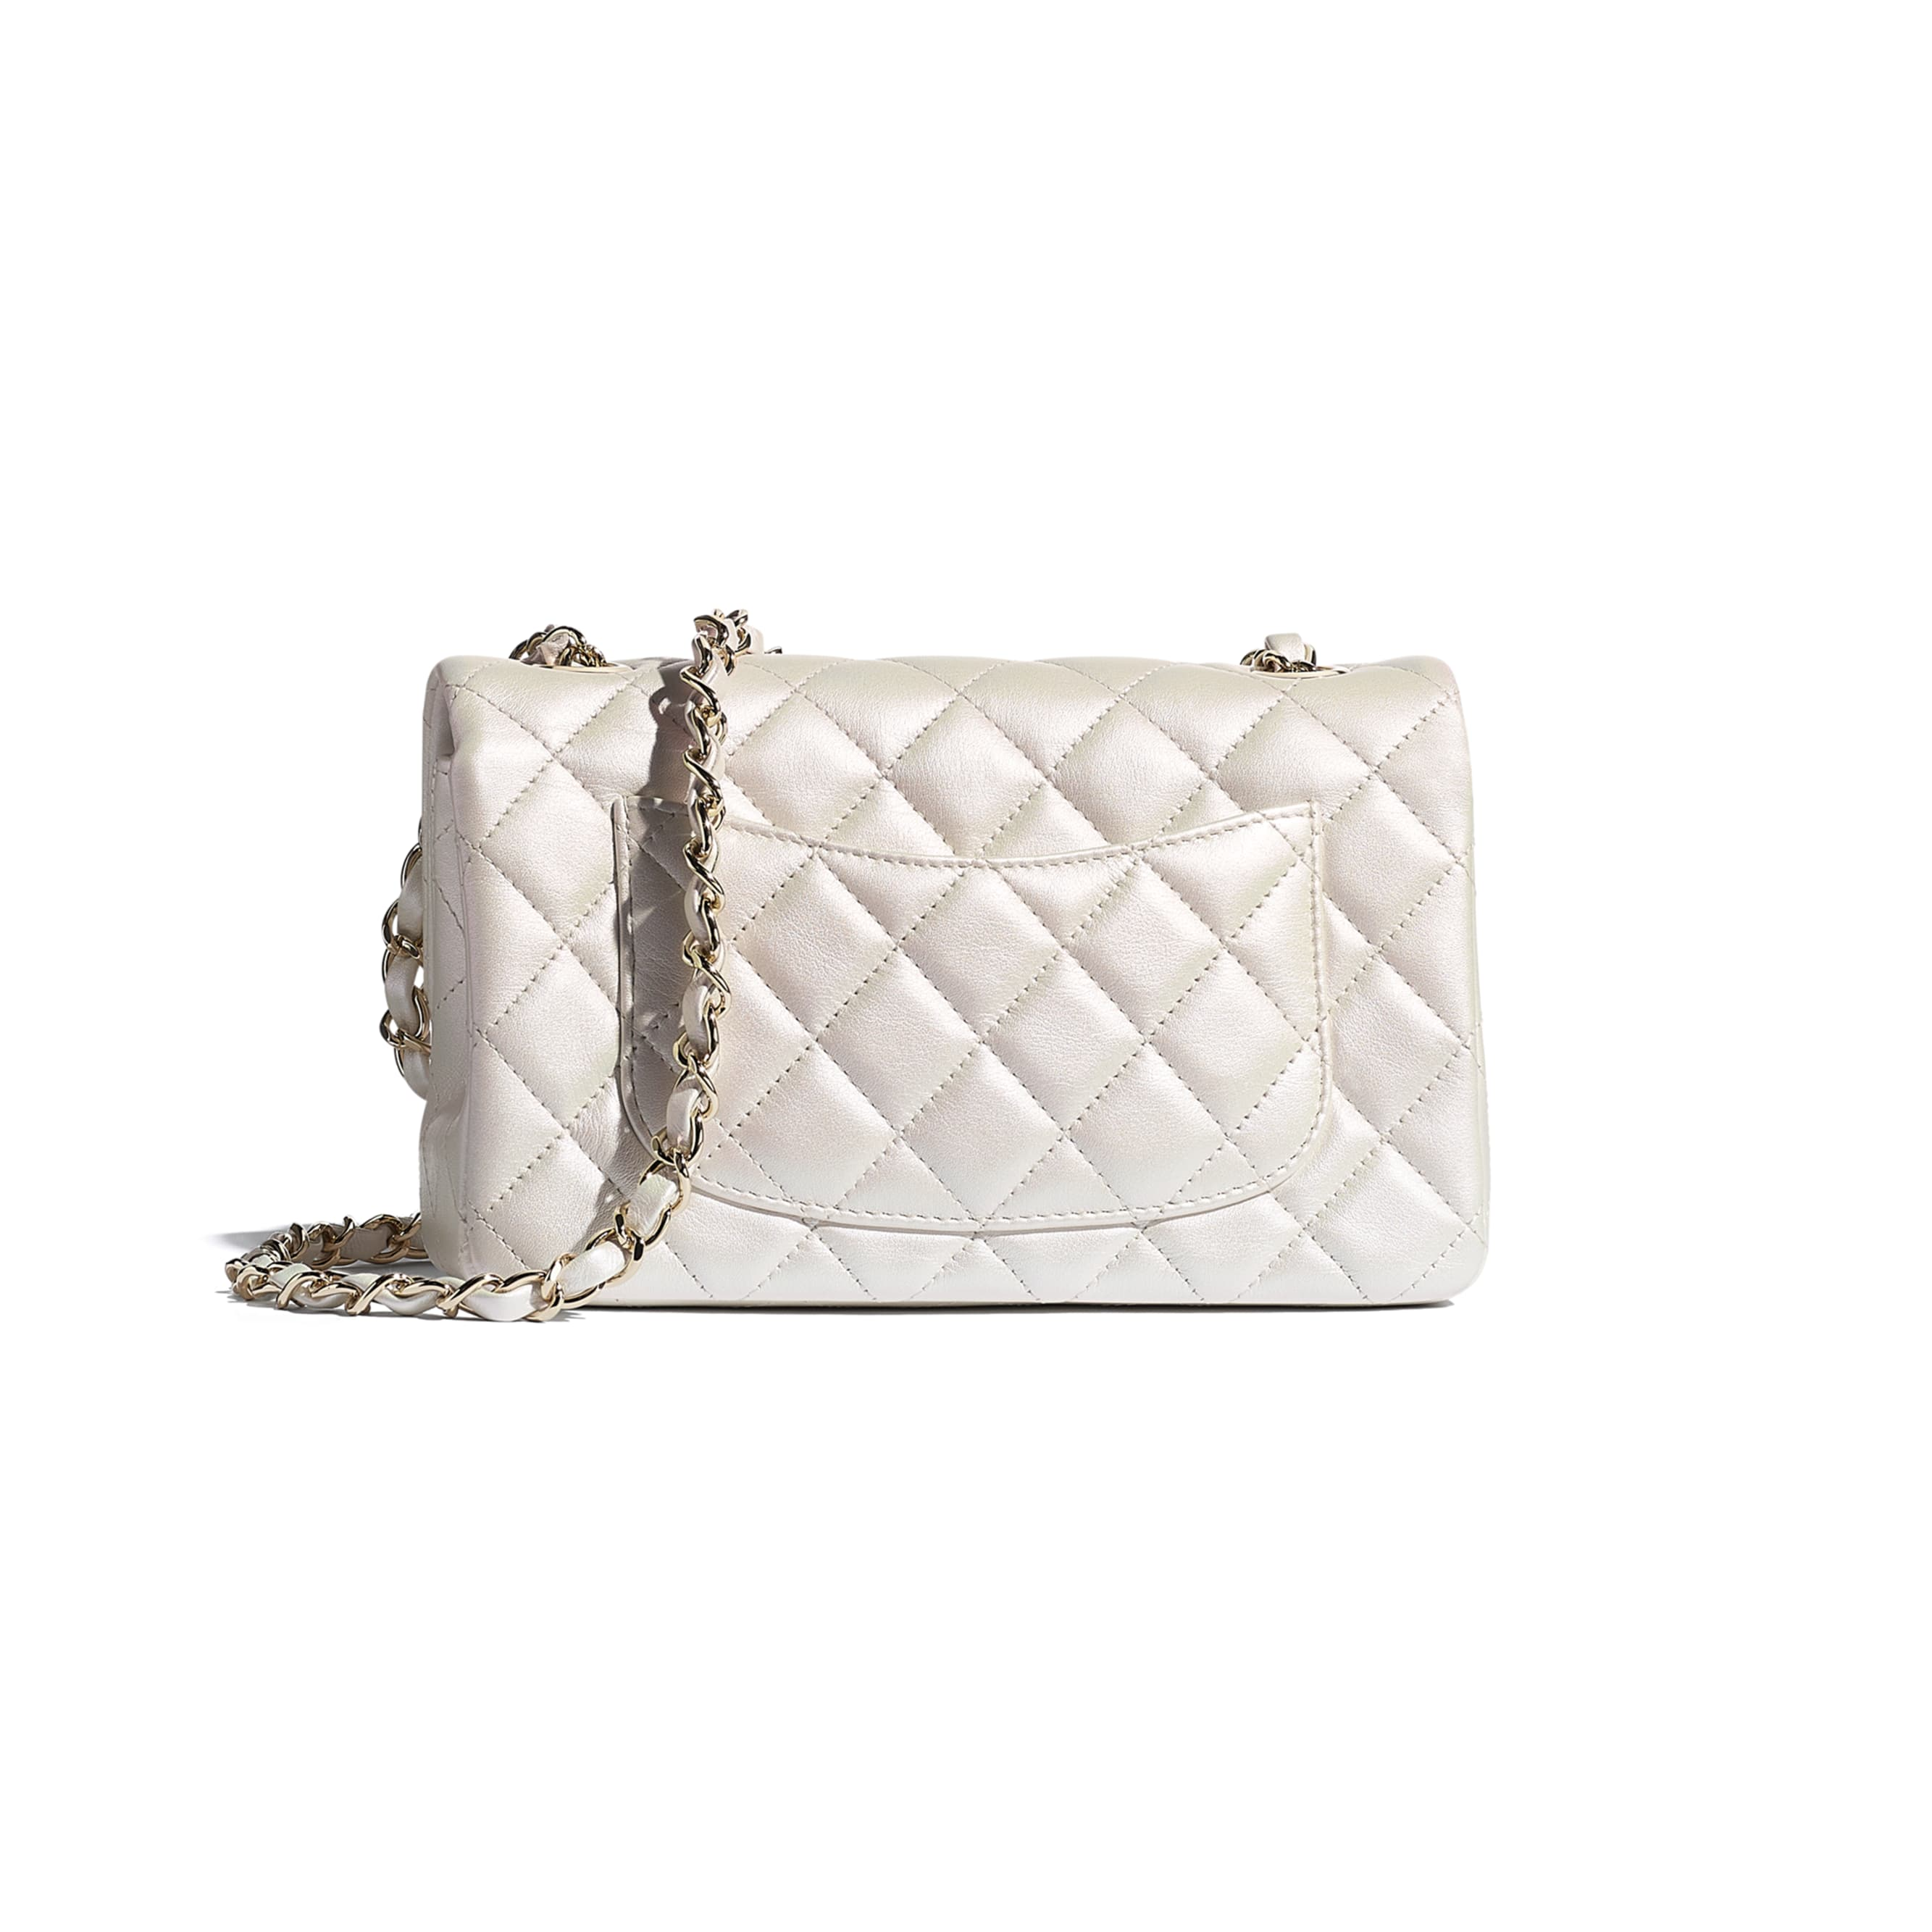 Mini Flap Bag - White - Iridescent Calfskin & Gold-Tone Metal - CHANEL - Alternative view - see standard sized version